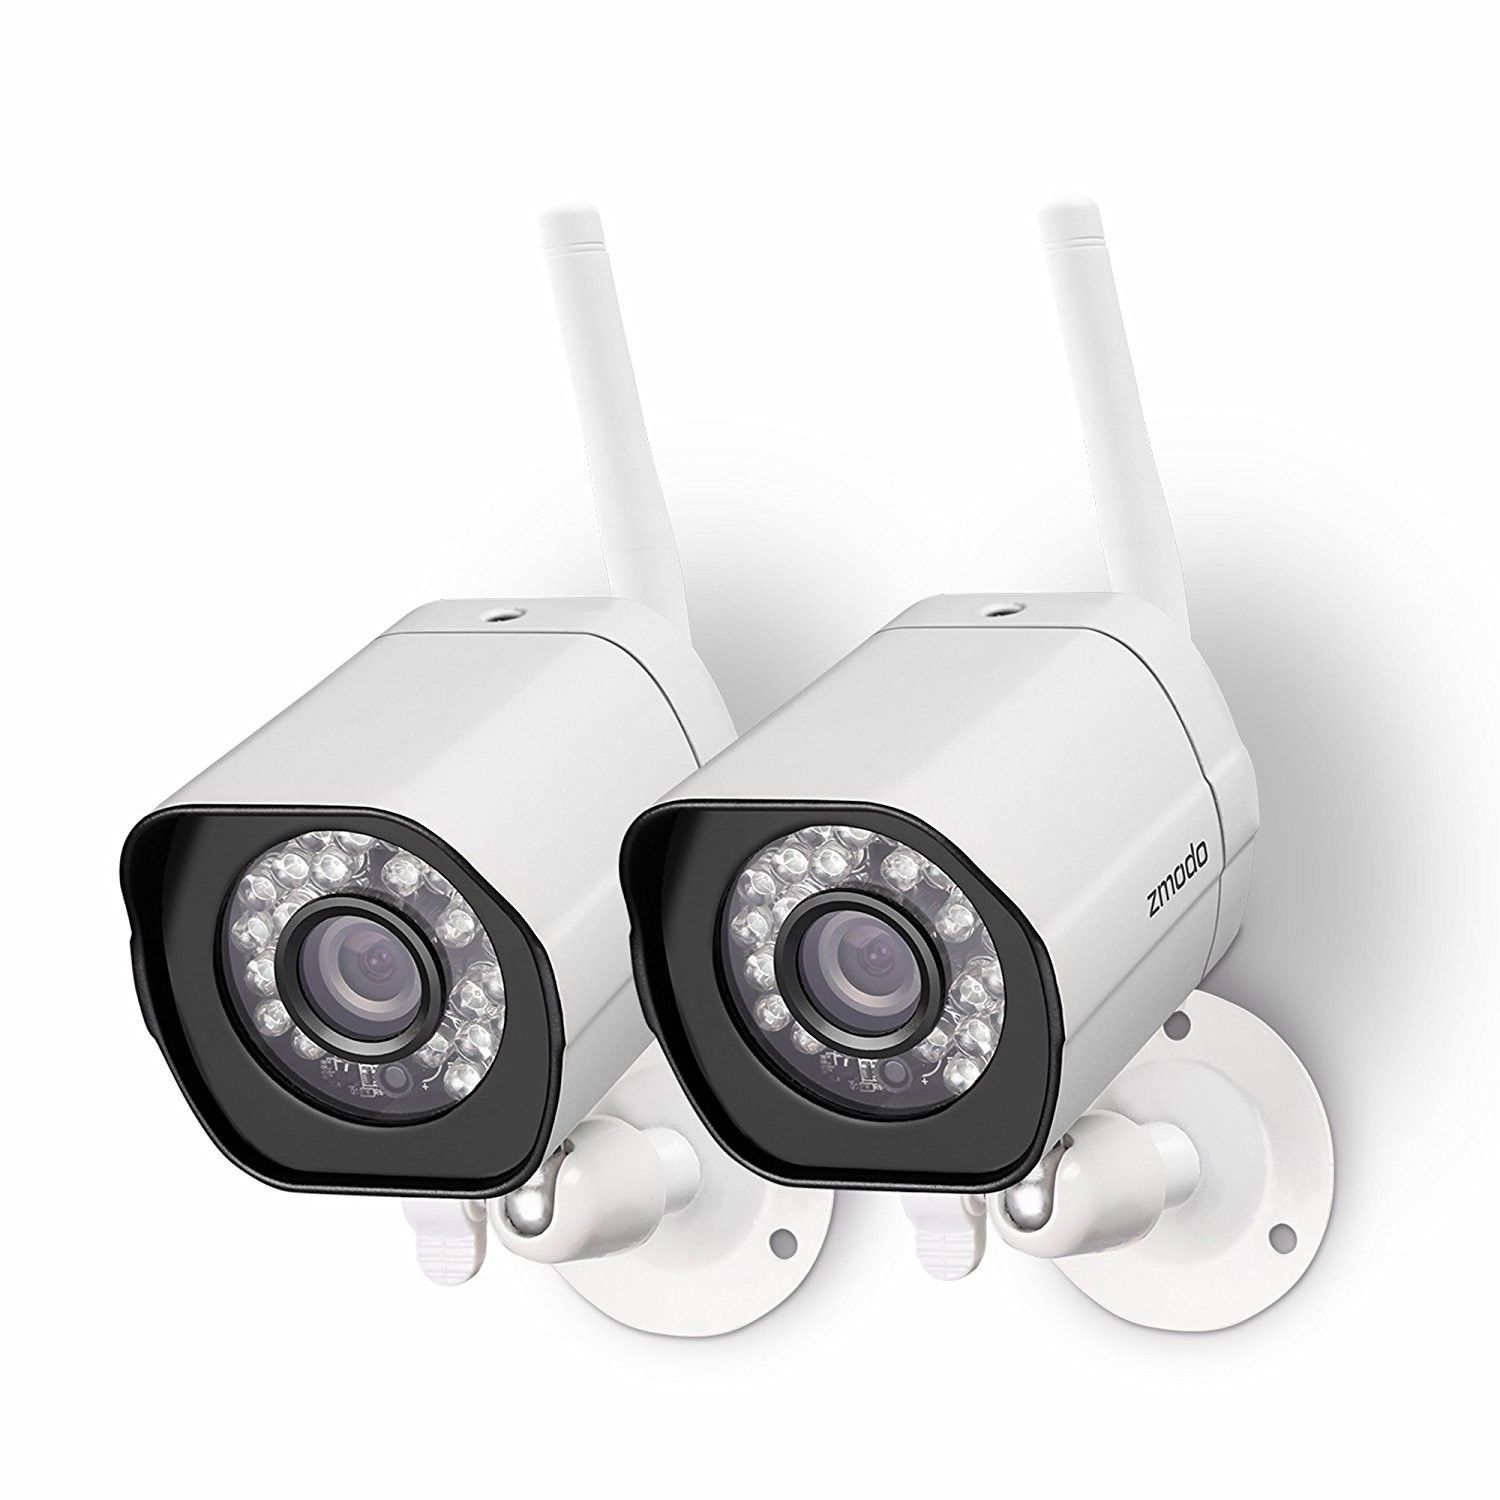 Zmodo Wireless Security Camera System ( 2 pack ) Smart HD Outdoor WiFi IP Cam...